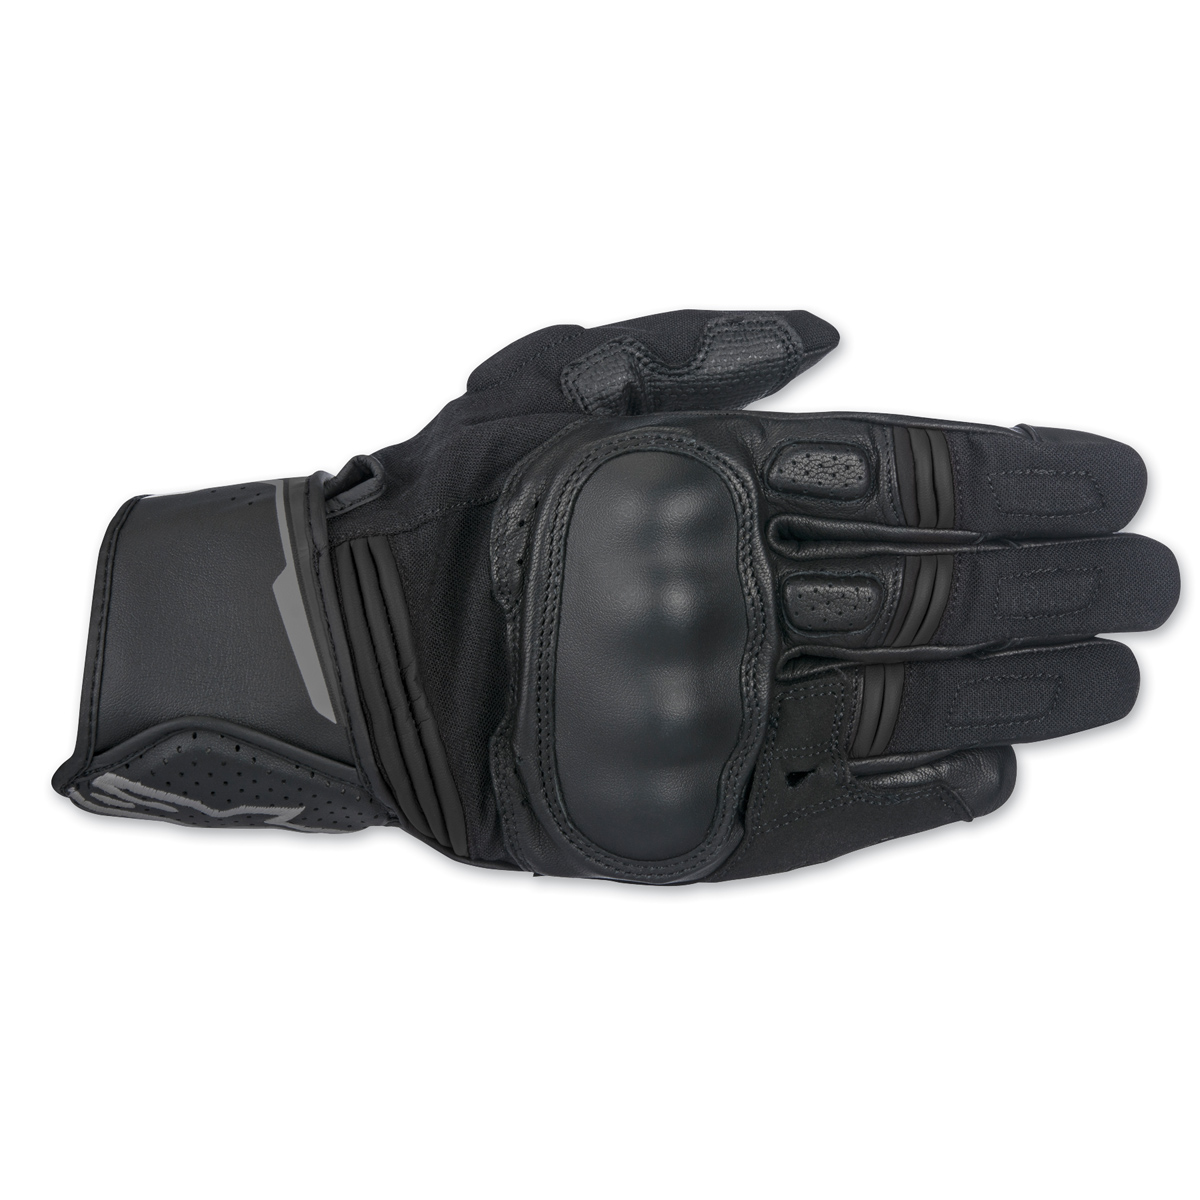 Alpinestars Men's Booster Black/Gray Gloves